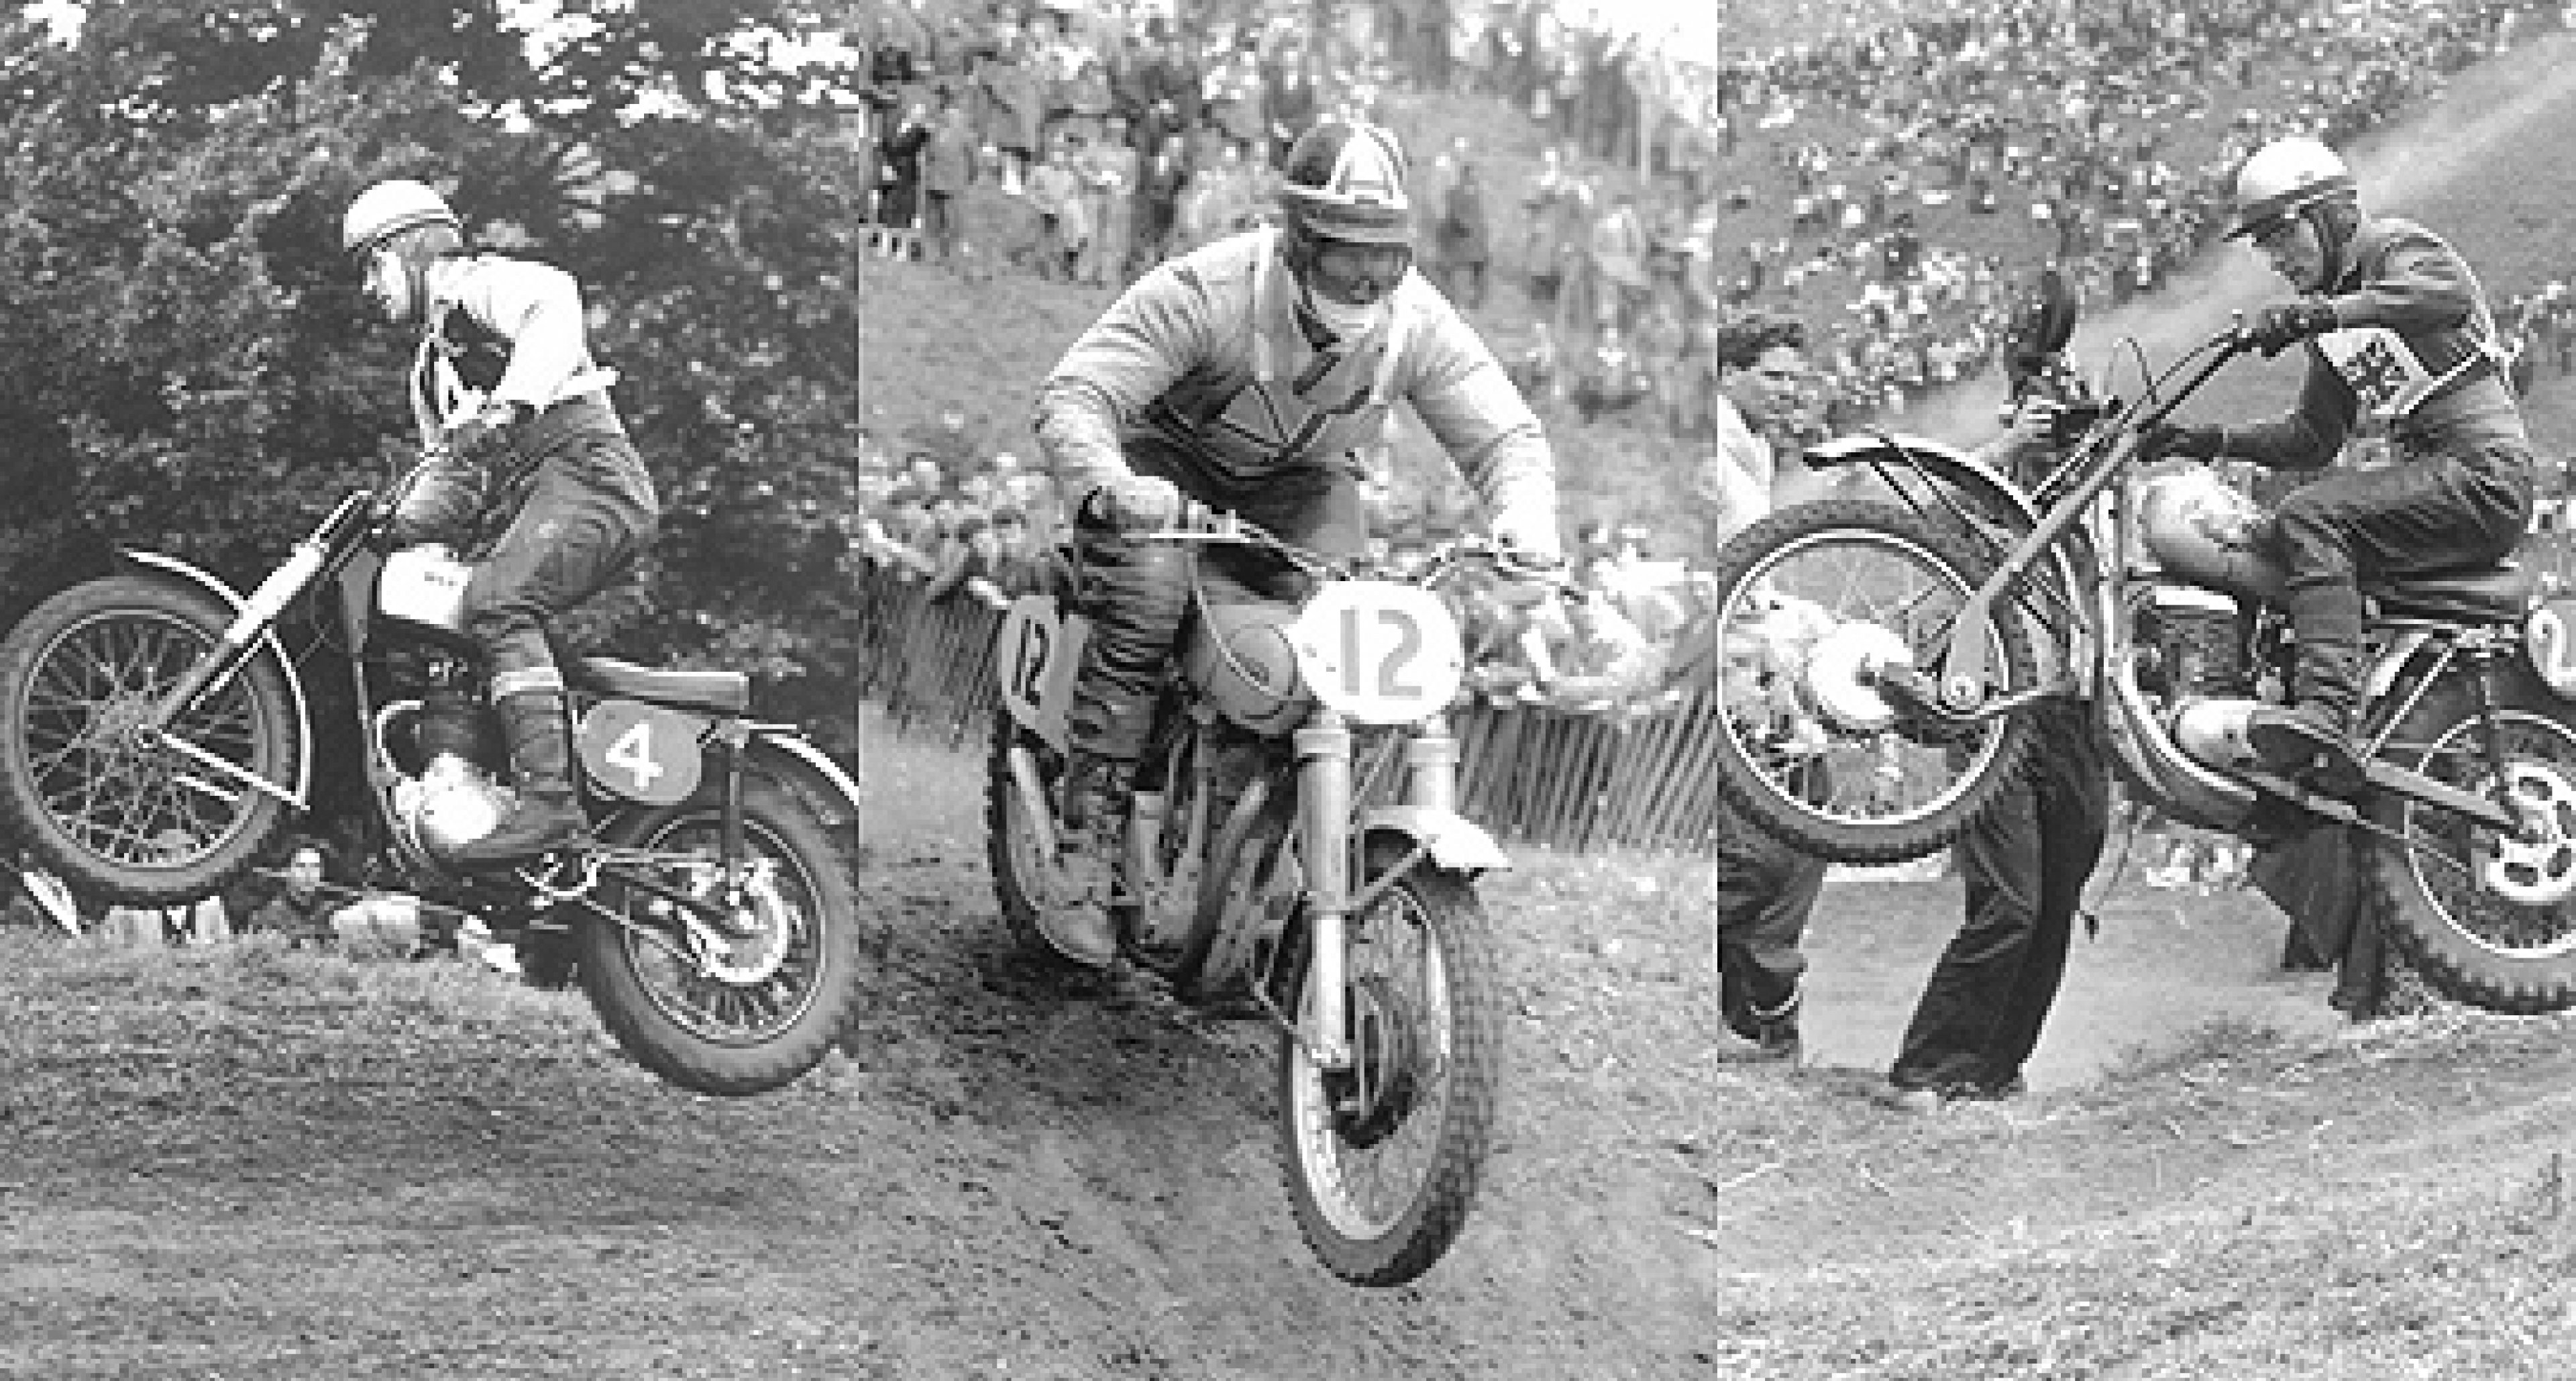 Goodwood Revival 2011: Classic motorcycle scramblers another highlight